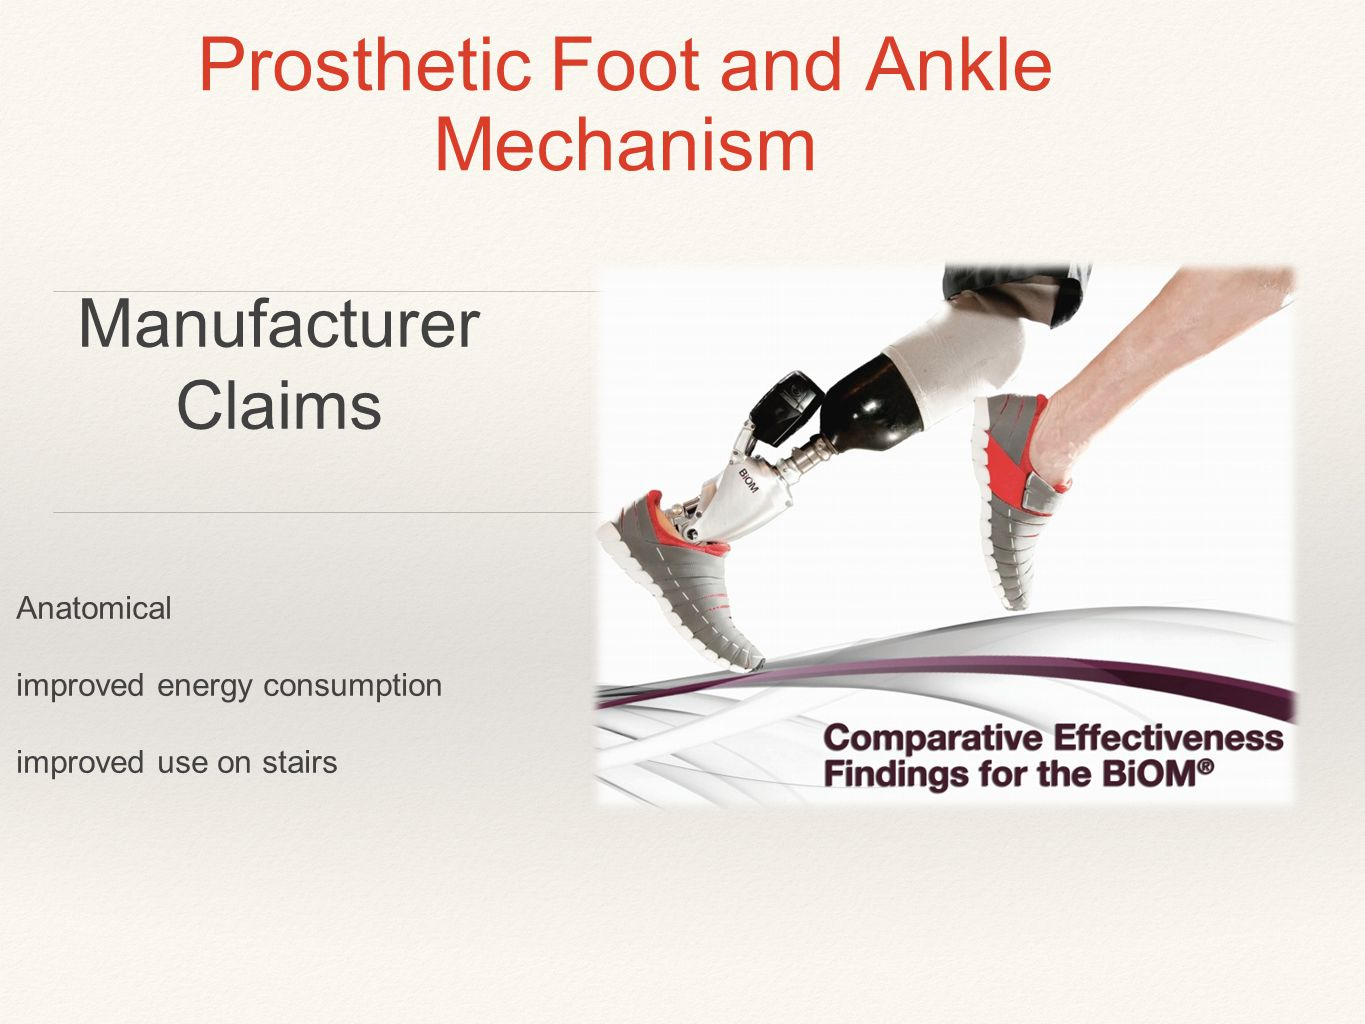 Prosthetic Foot and Ankle Mechanism Anatomical improved energy consumption improved use on stairs Manufacturer Claims